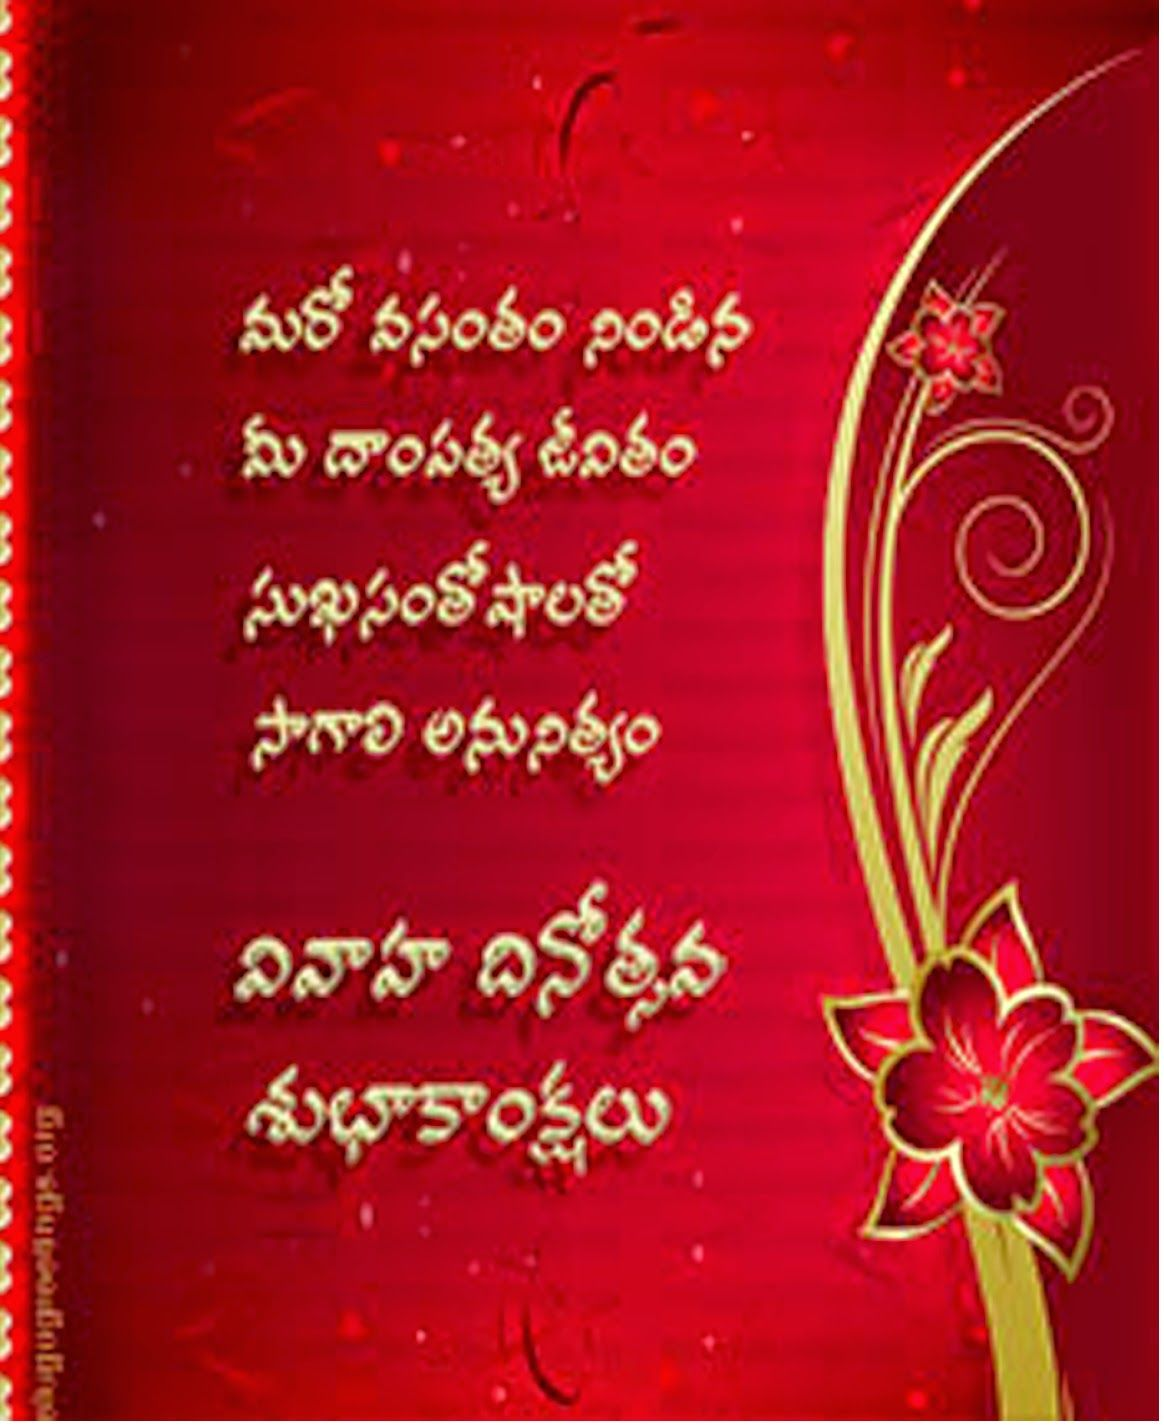 Marriage Day Greetings In Telugu Free Download Telugu Pelli Roju